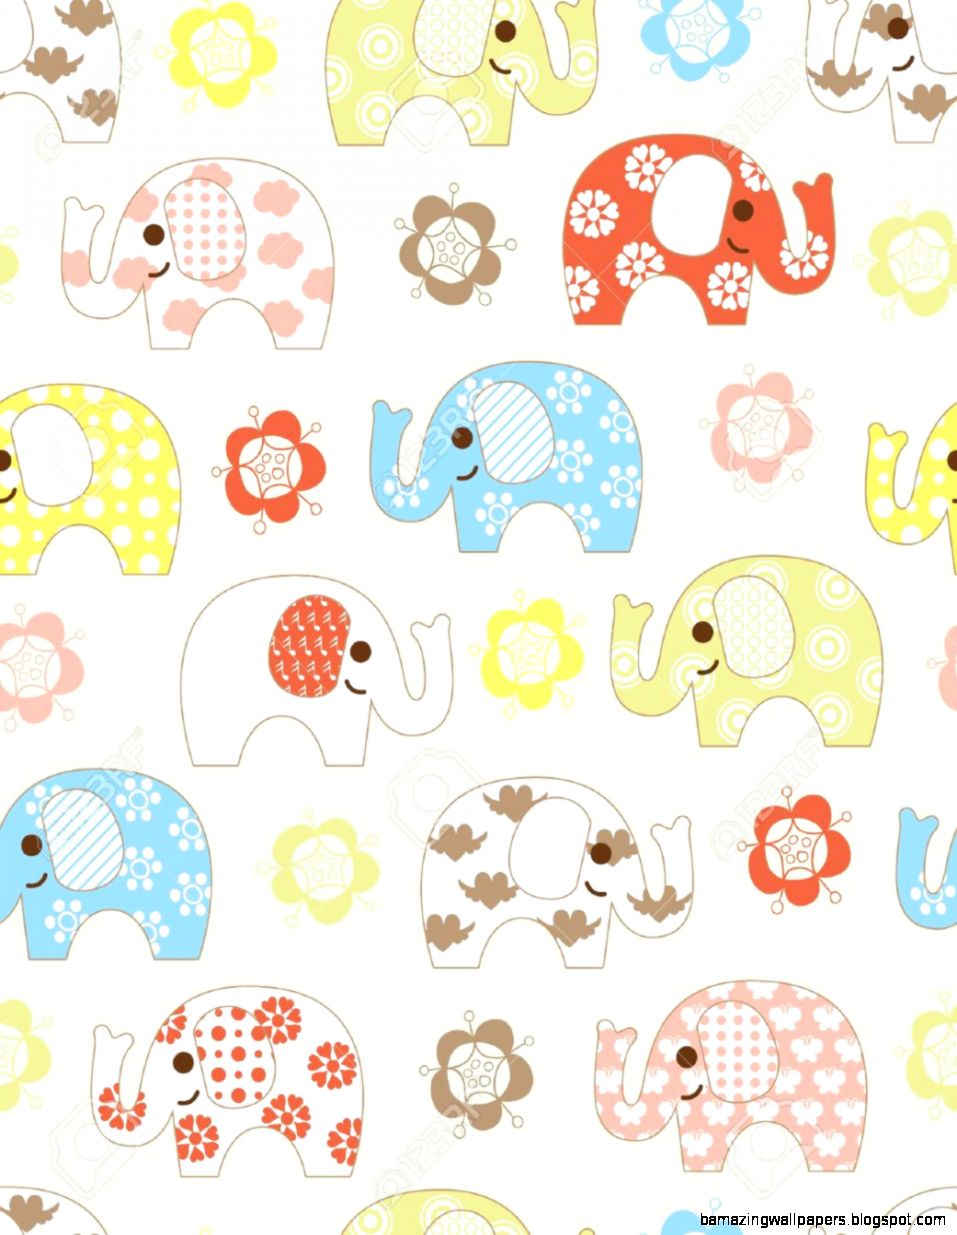 Cute Animated Elephant Wallpaper Amazing Wallpapers